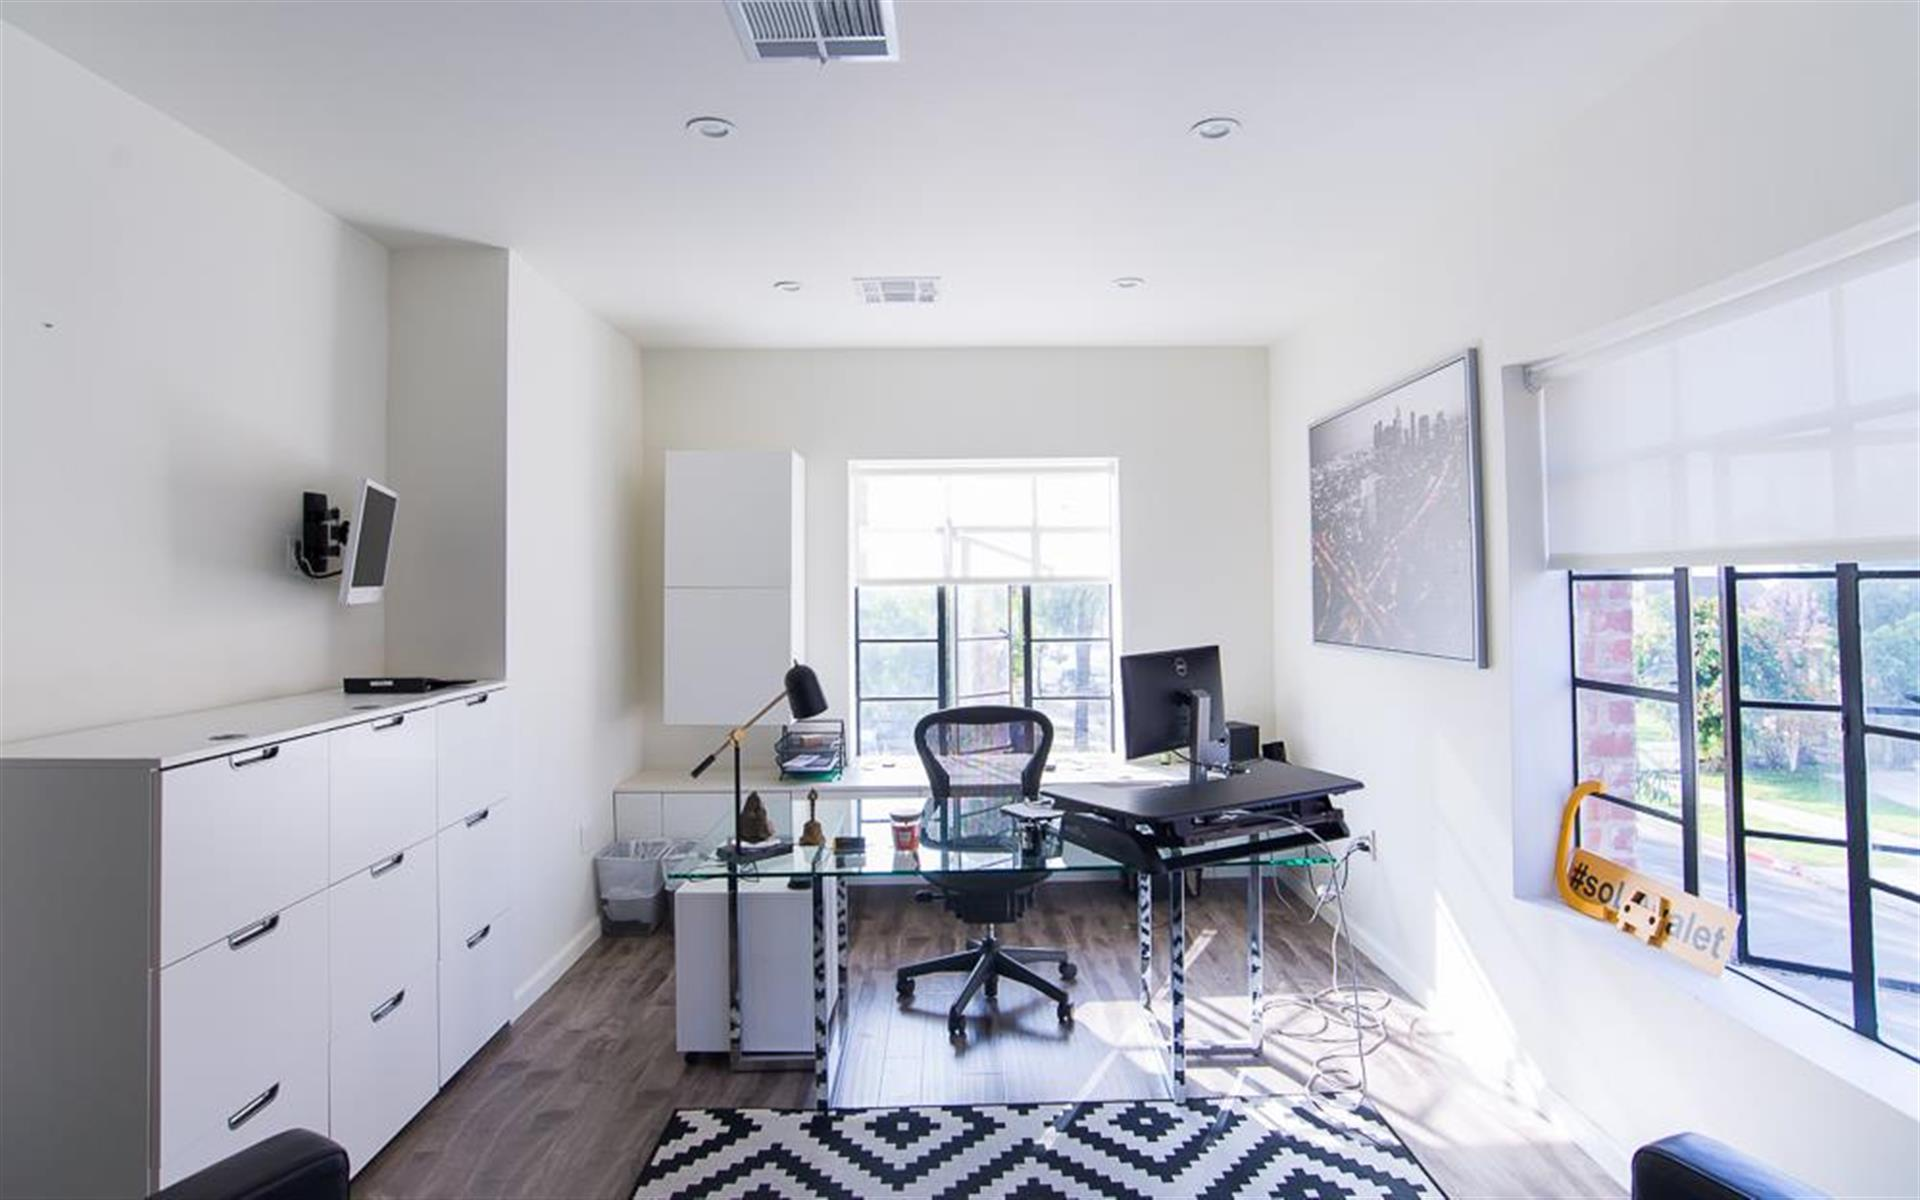 Curbstand, Inc. - Office No. 1